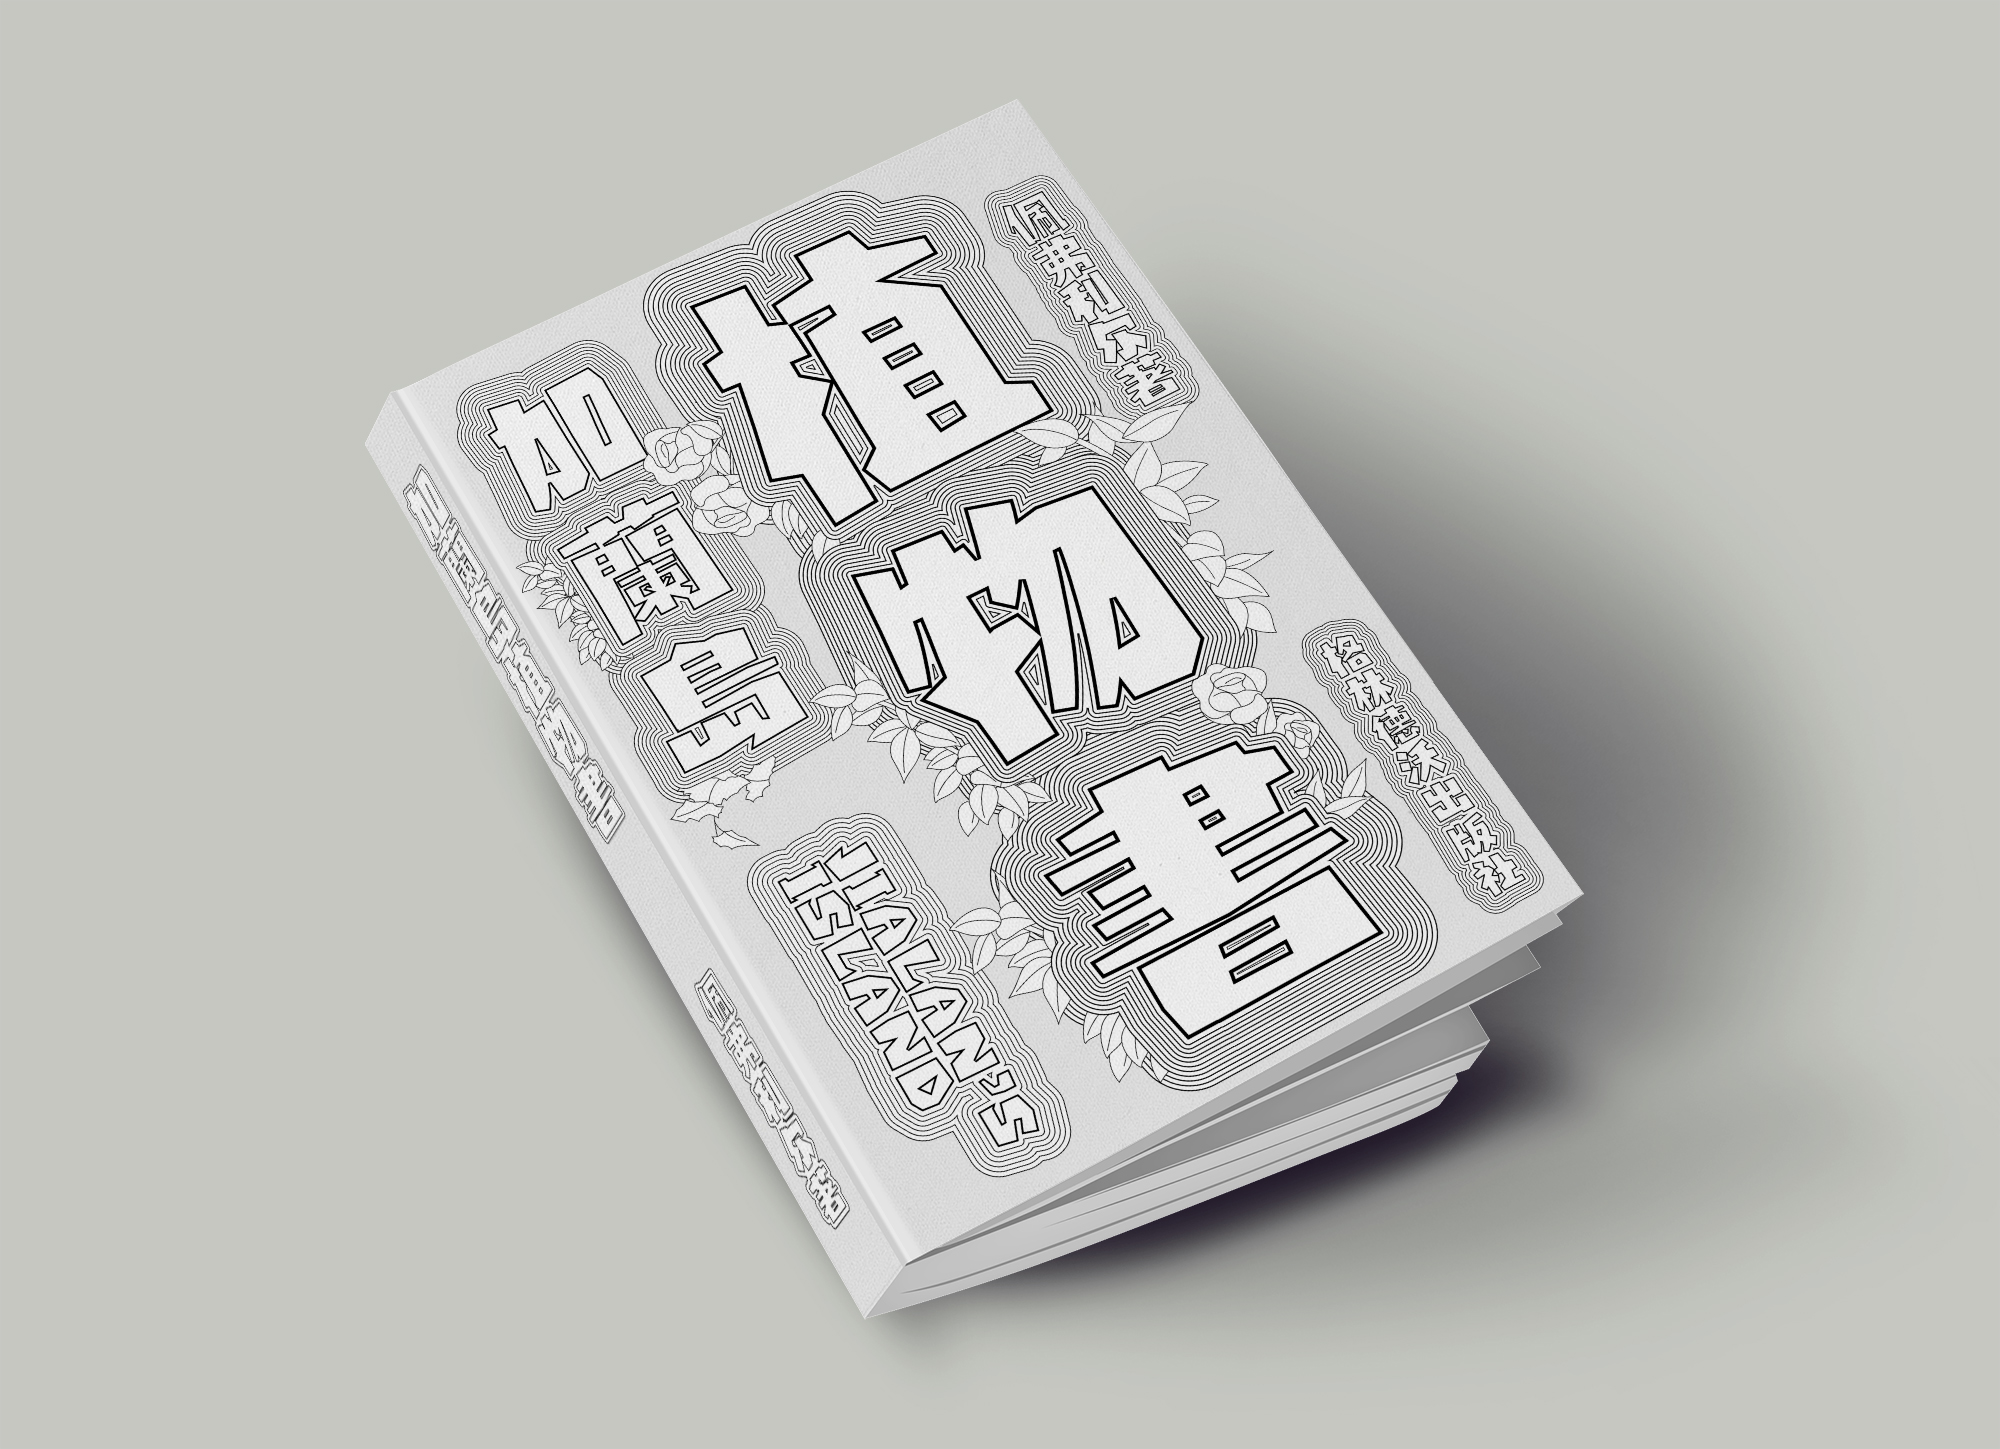 It is very suitable for various Chinese style text or headline scenes, posters and headlines.